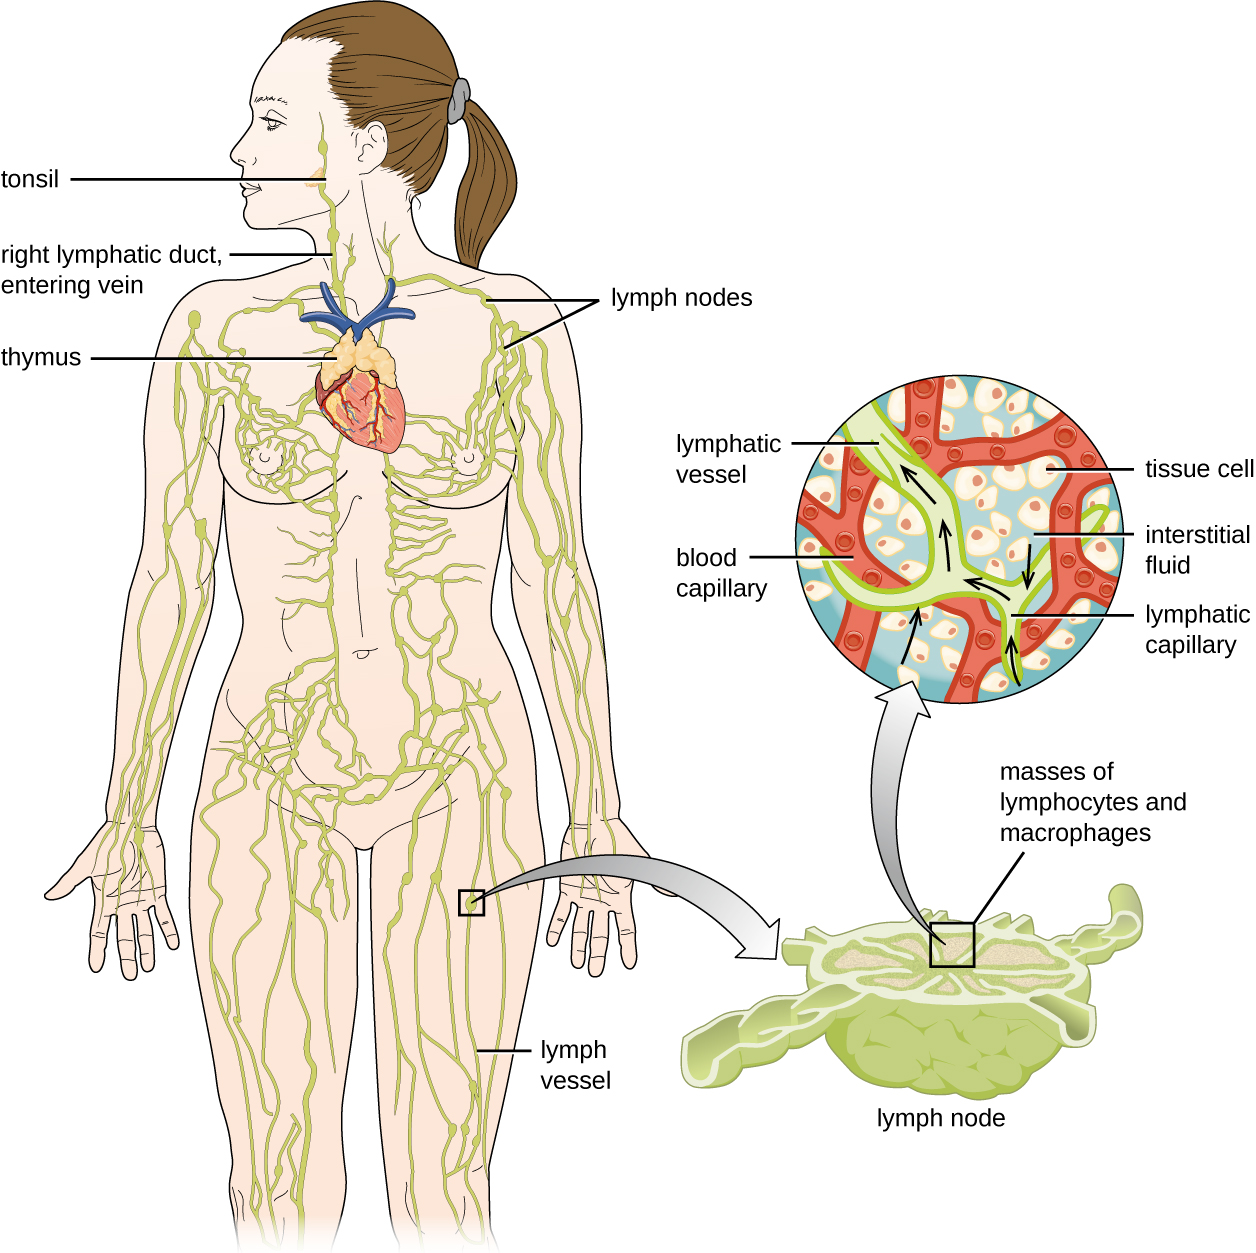 "Diagram of the lymphatic system. Lymph notes are swellings on tubes (called lymph vessels) that travel throughout the body. The right lymphatic duct and entering vein are in the neck. A tonsil is a swelling on the lymph vessel in the mouth. The thymus is a lumpy structure on the heart. A close-up of a lymph node shows a roundish structure with many tubes attached to it. The central area has a box labeled ""masses of lymphocytes and macrophages"". A close-up of this area shows tissue cells in the background with a blood capillary network. Lymph vessels run between the  blood capillary network. Lymphatic capillaries are the ends of the lymph vessels. Fluid from around the cells (called interstitial fluid) enters the lymphatic capillaries and travels through the lymphatic vessels."